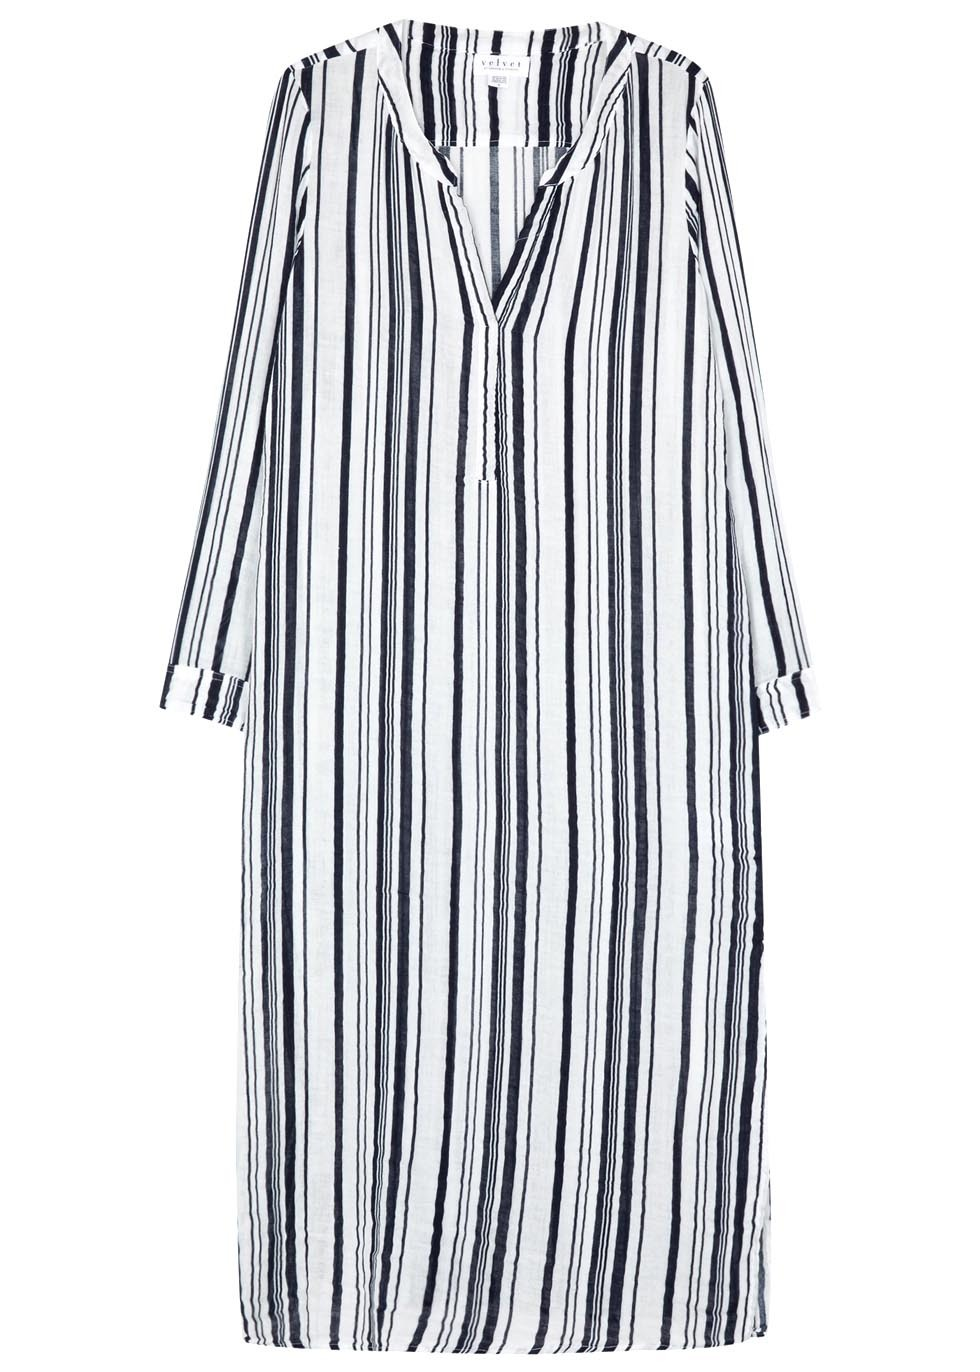 Genevieve Striped Cotton Midi Dress - style: tunic; length: calf length; neckline: v-neck; fit: loose; pattern: vertical stripes; predominant colour: white; secondary colour: black; occasions: casual; fibres: cotton - 100%; sleeve length: long sleeve; sleeve style: standard; pattern type: fabric; texture group: jersey - stretchy/drapey; season: s/s 2016; wardrobe: highlight